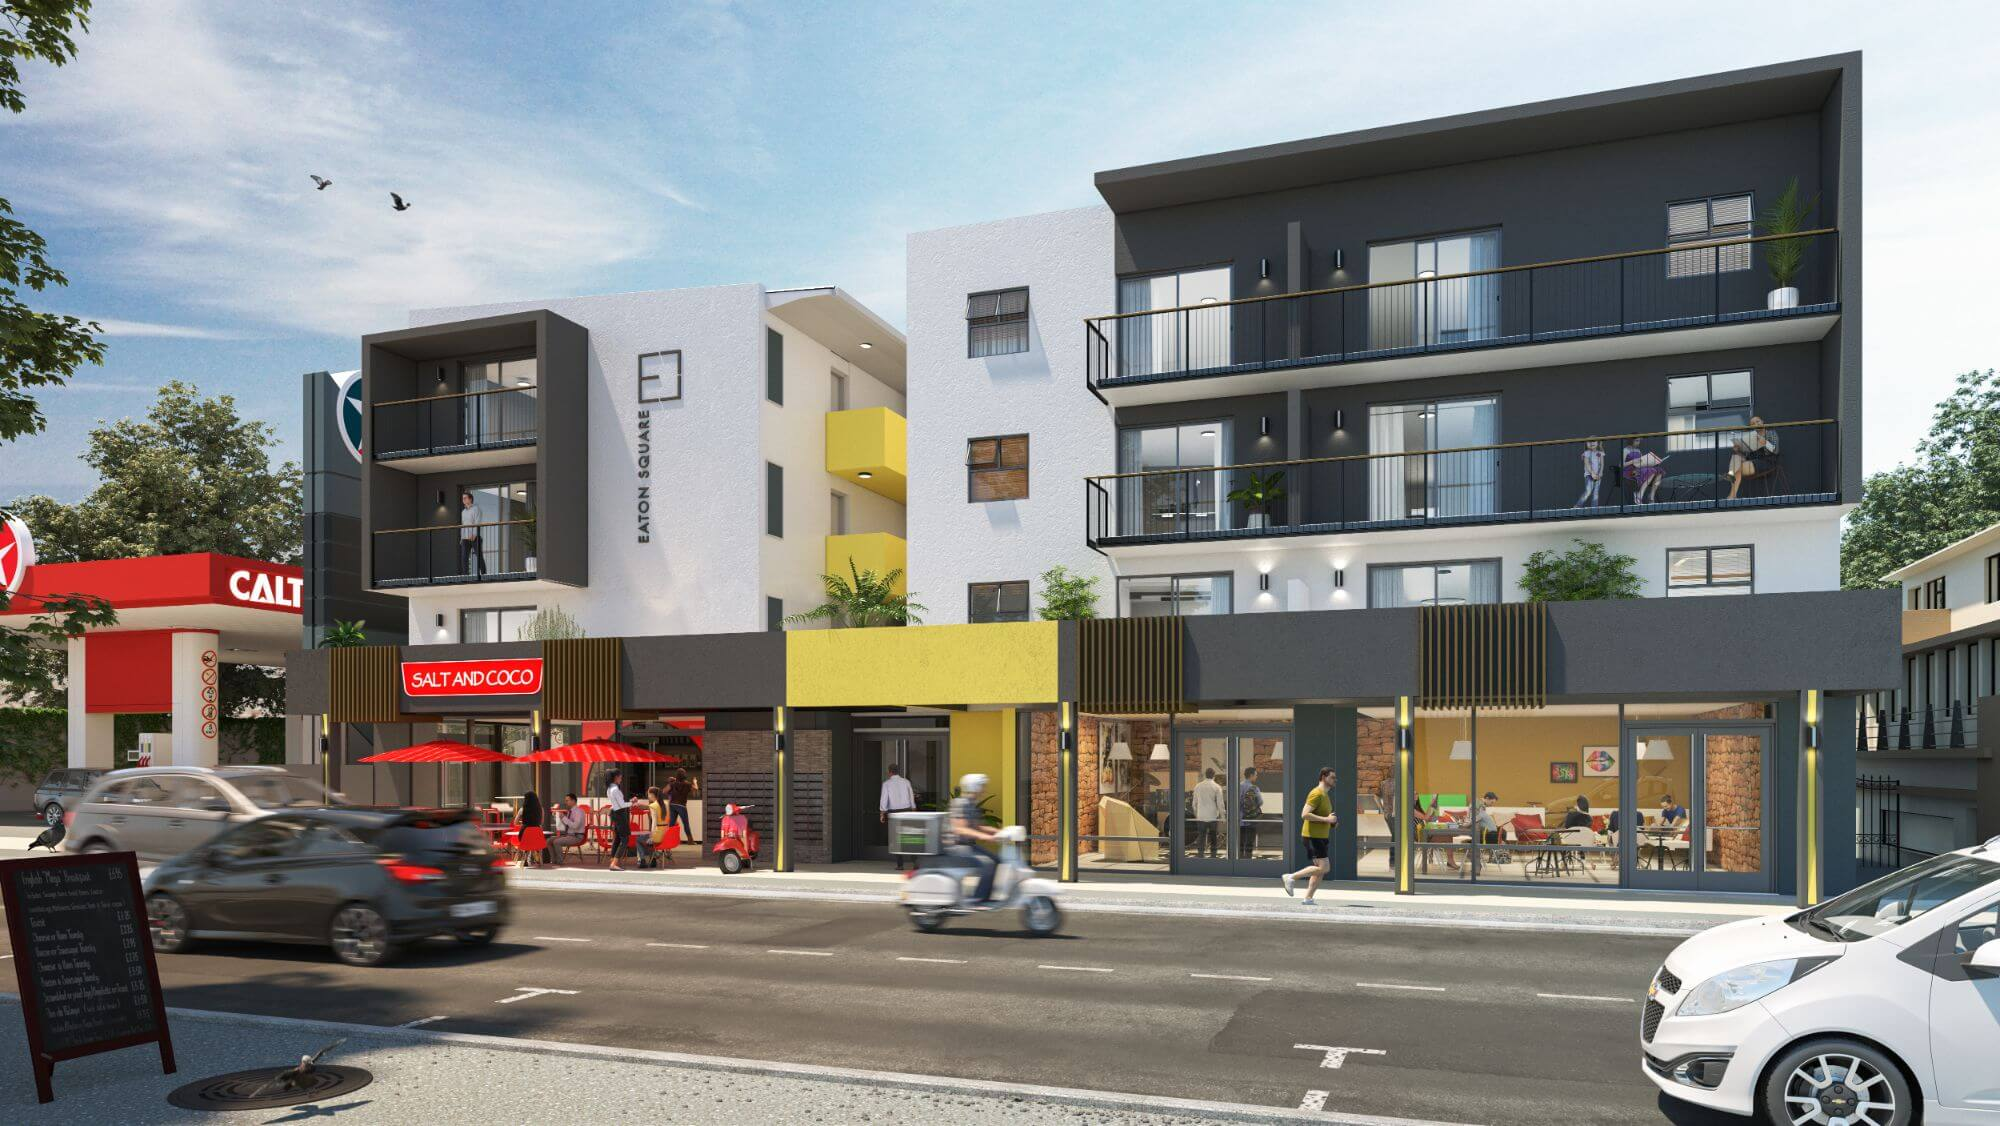 Eaton header - Eaton Square - A brand new offering in Cape Town's latest urban renewal zone